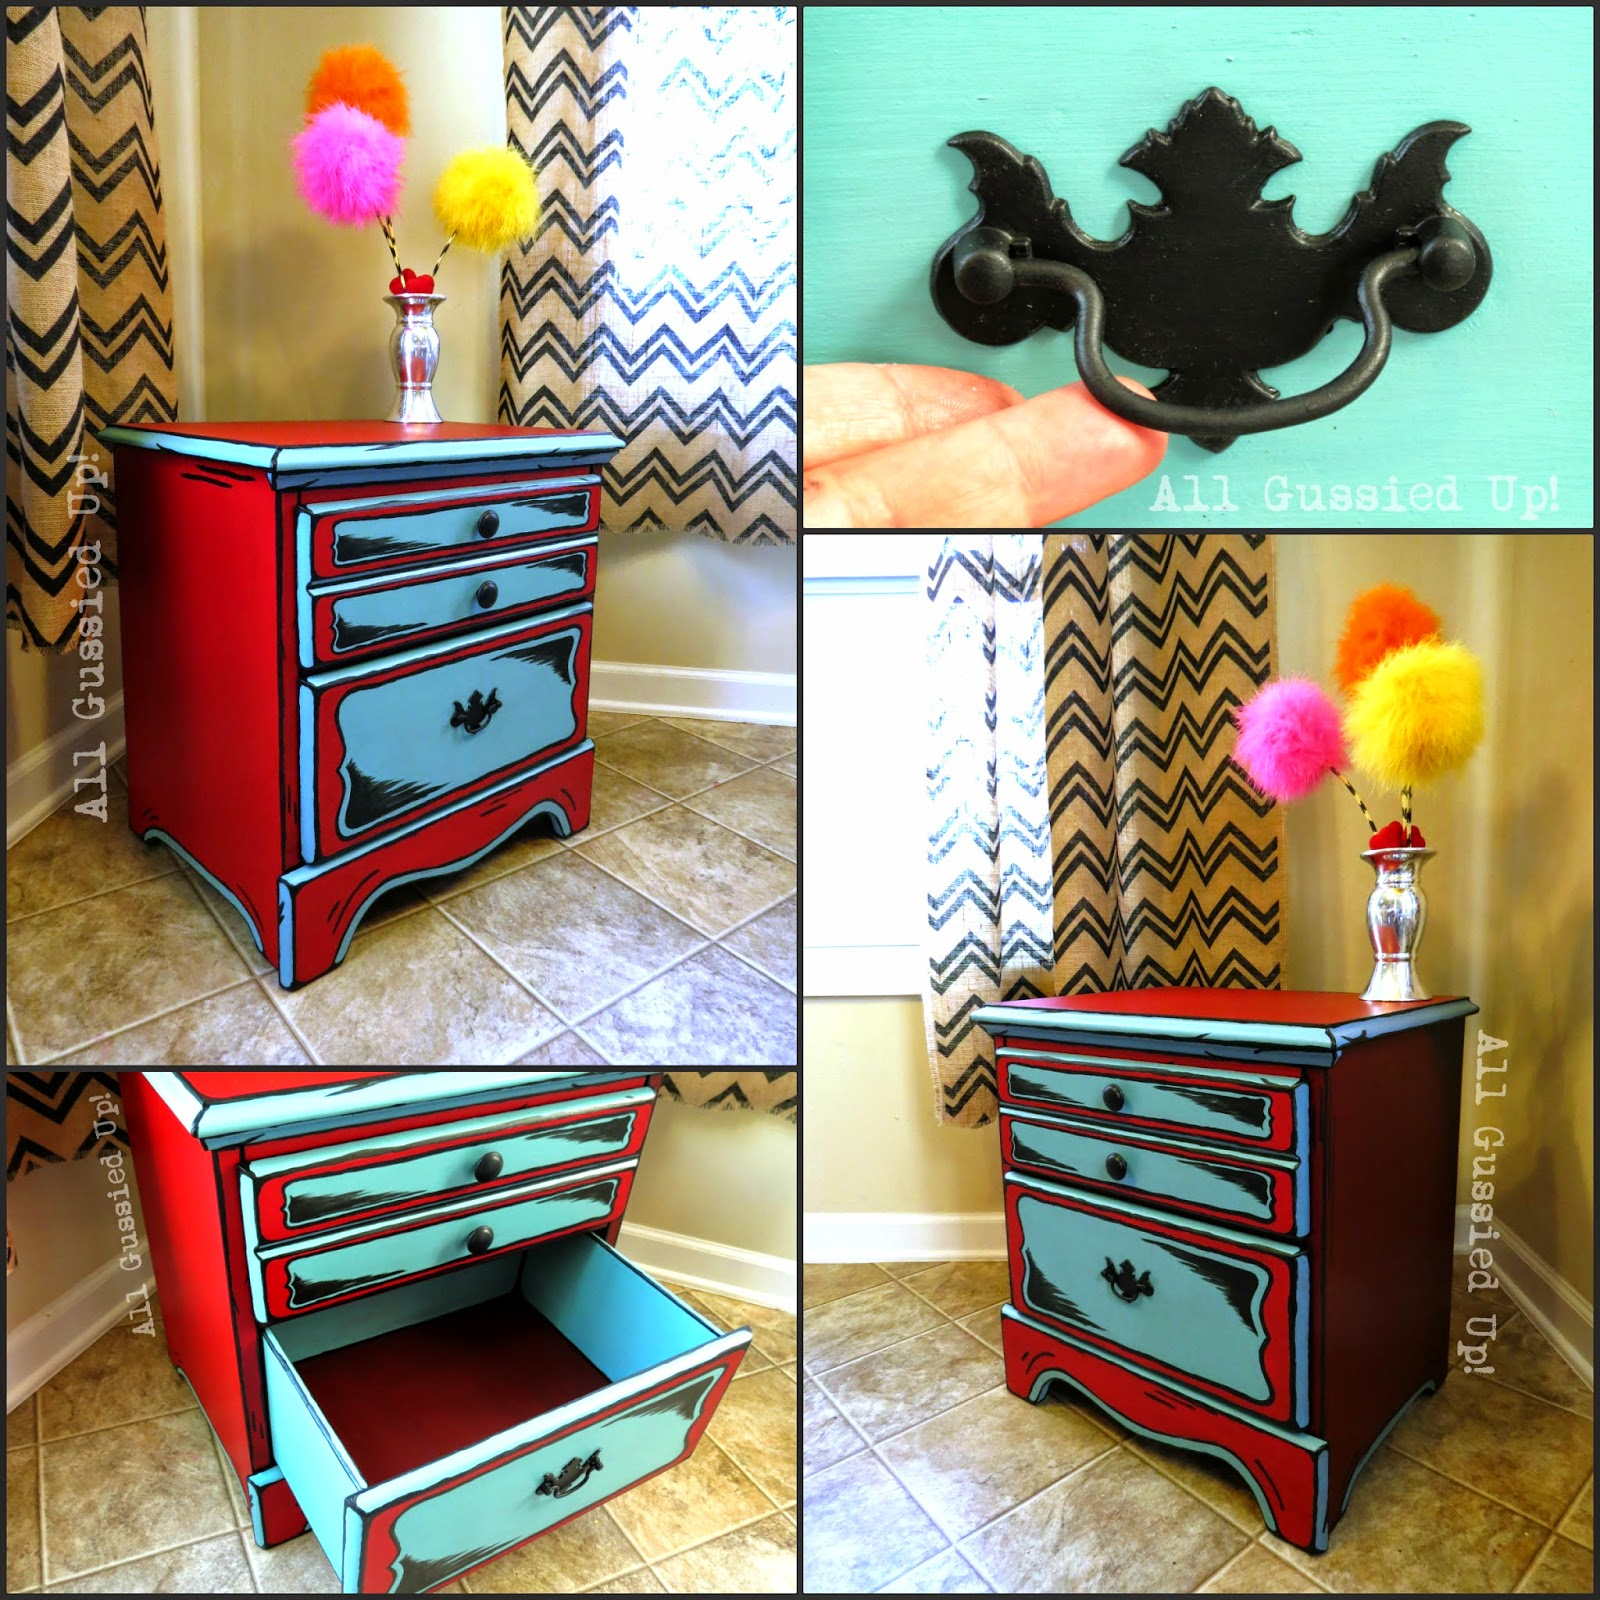 Dr.-Seuss-night-stand-so-serene-shabby-paints-licorice-sheer-vax-folk-art-imperial-red-All-gussied-up-Grace-Lauer